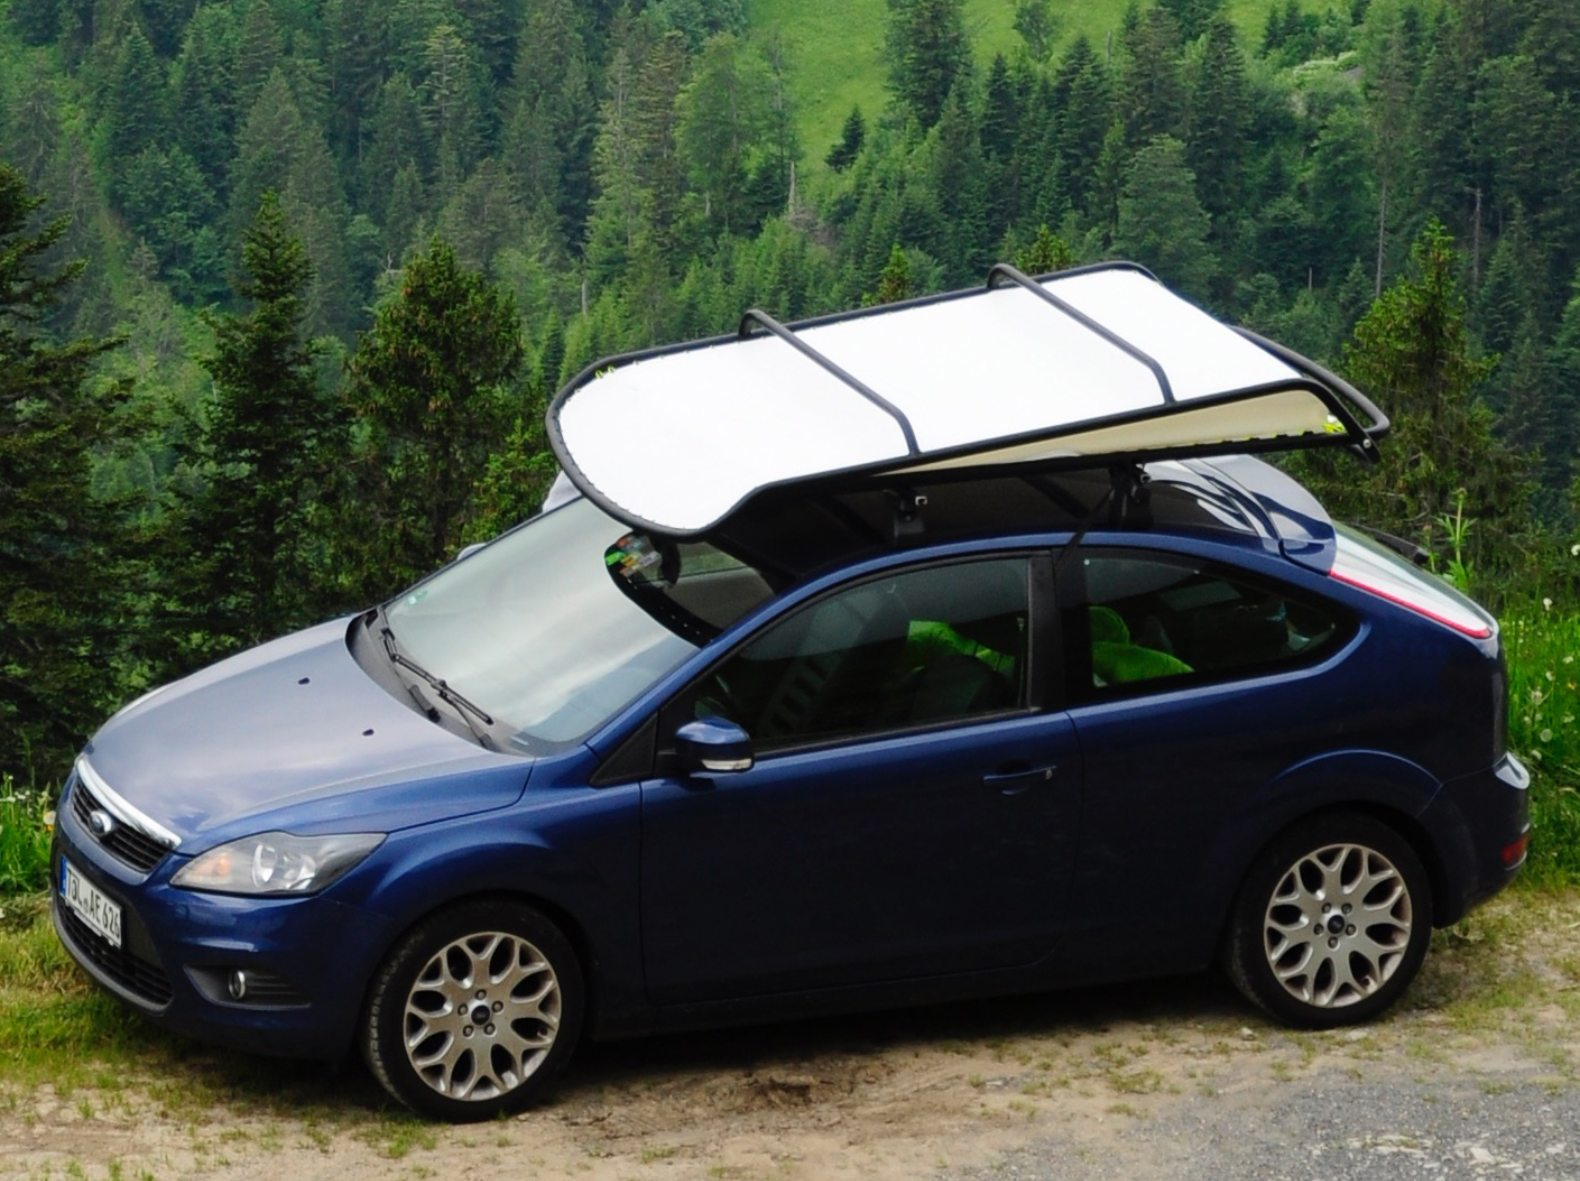 This Pop Up Rooftop Tent Converts Any Car Into A Camper